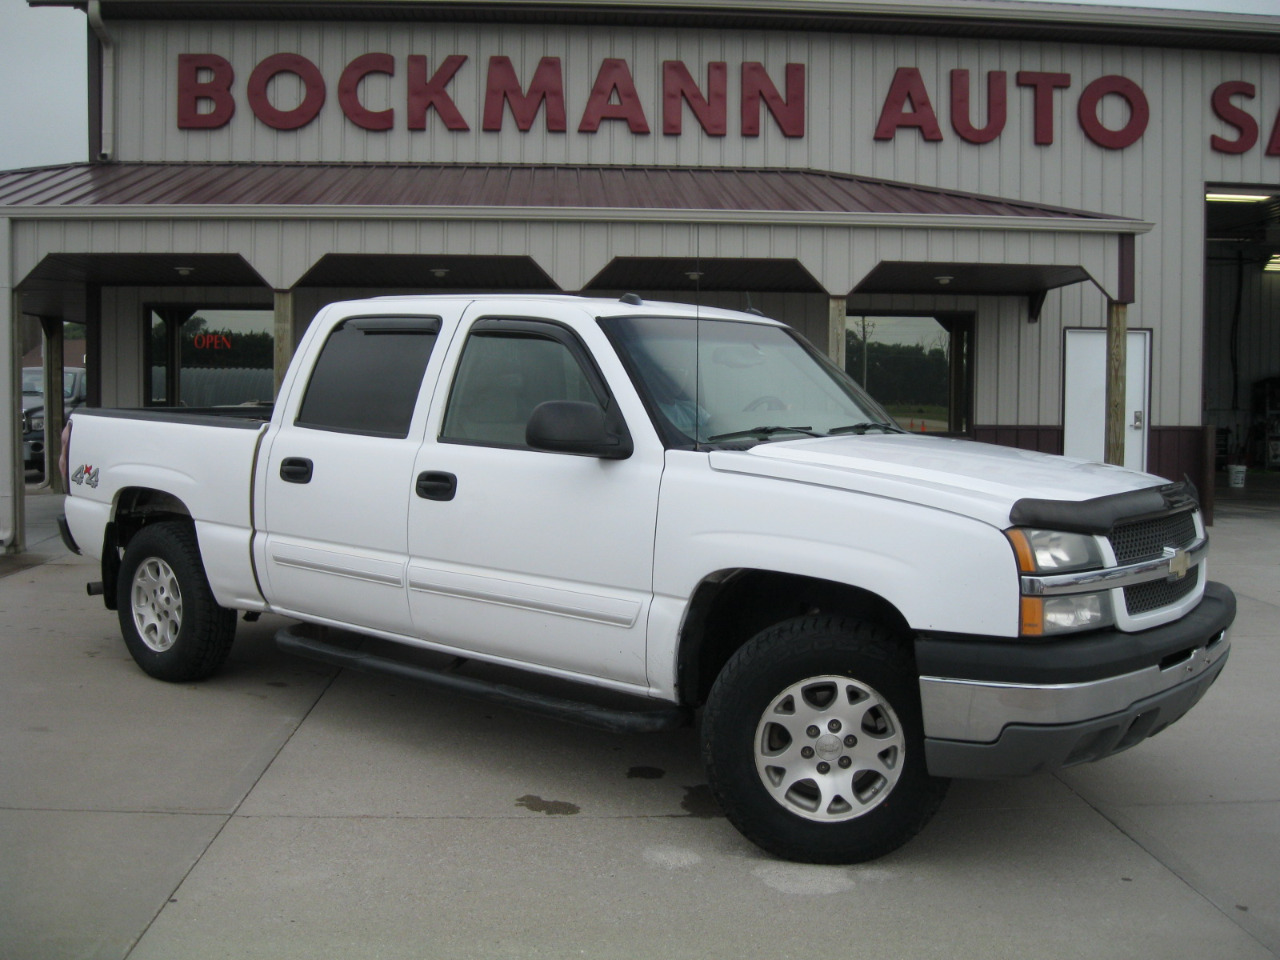 2005 Chevy Silverado For Sale >> Used 2005 Chevrolet Silverado 1500 In Saint Paul Ne Auto Com 2gcek13t351261663